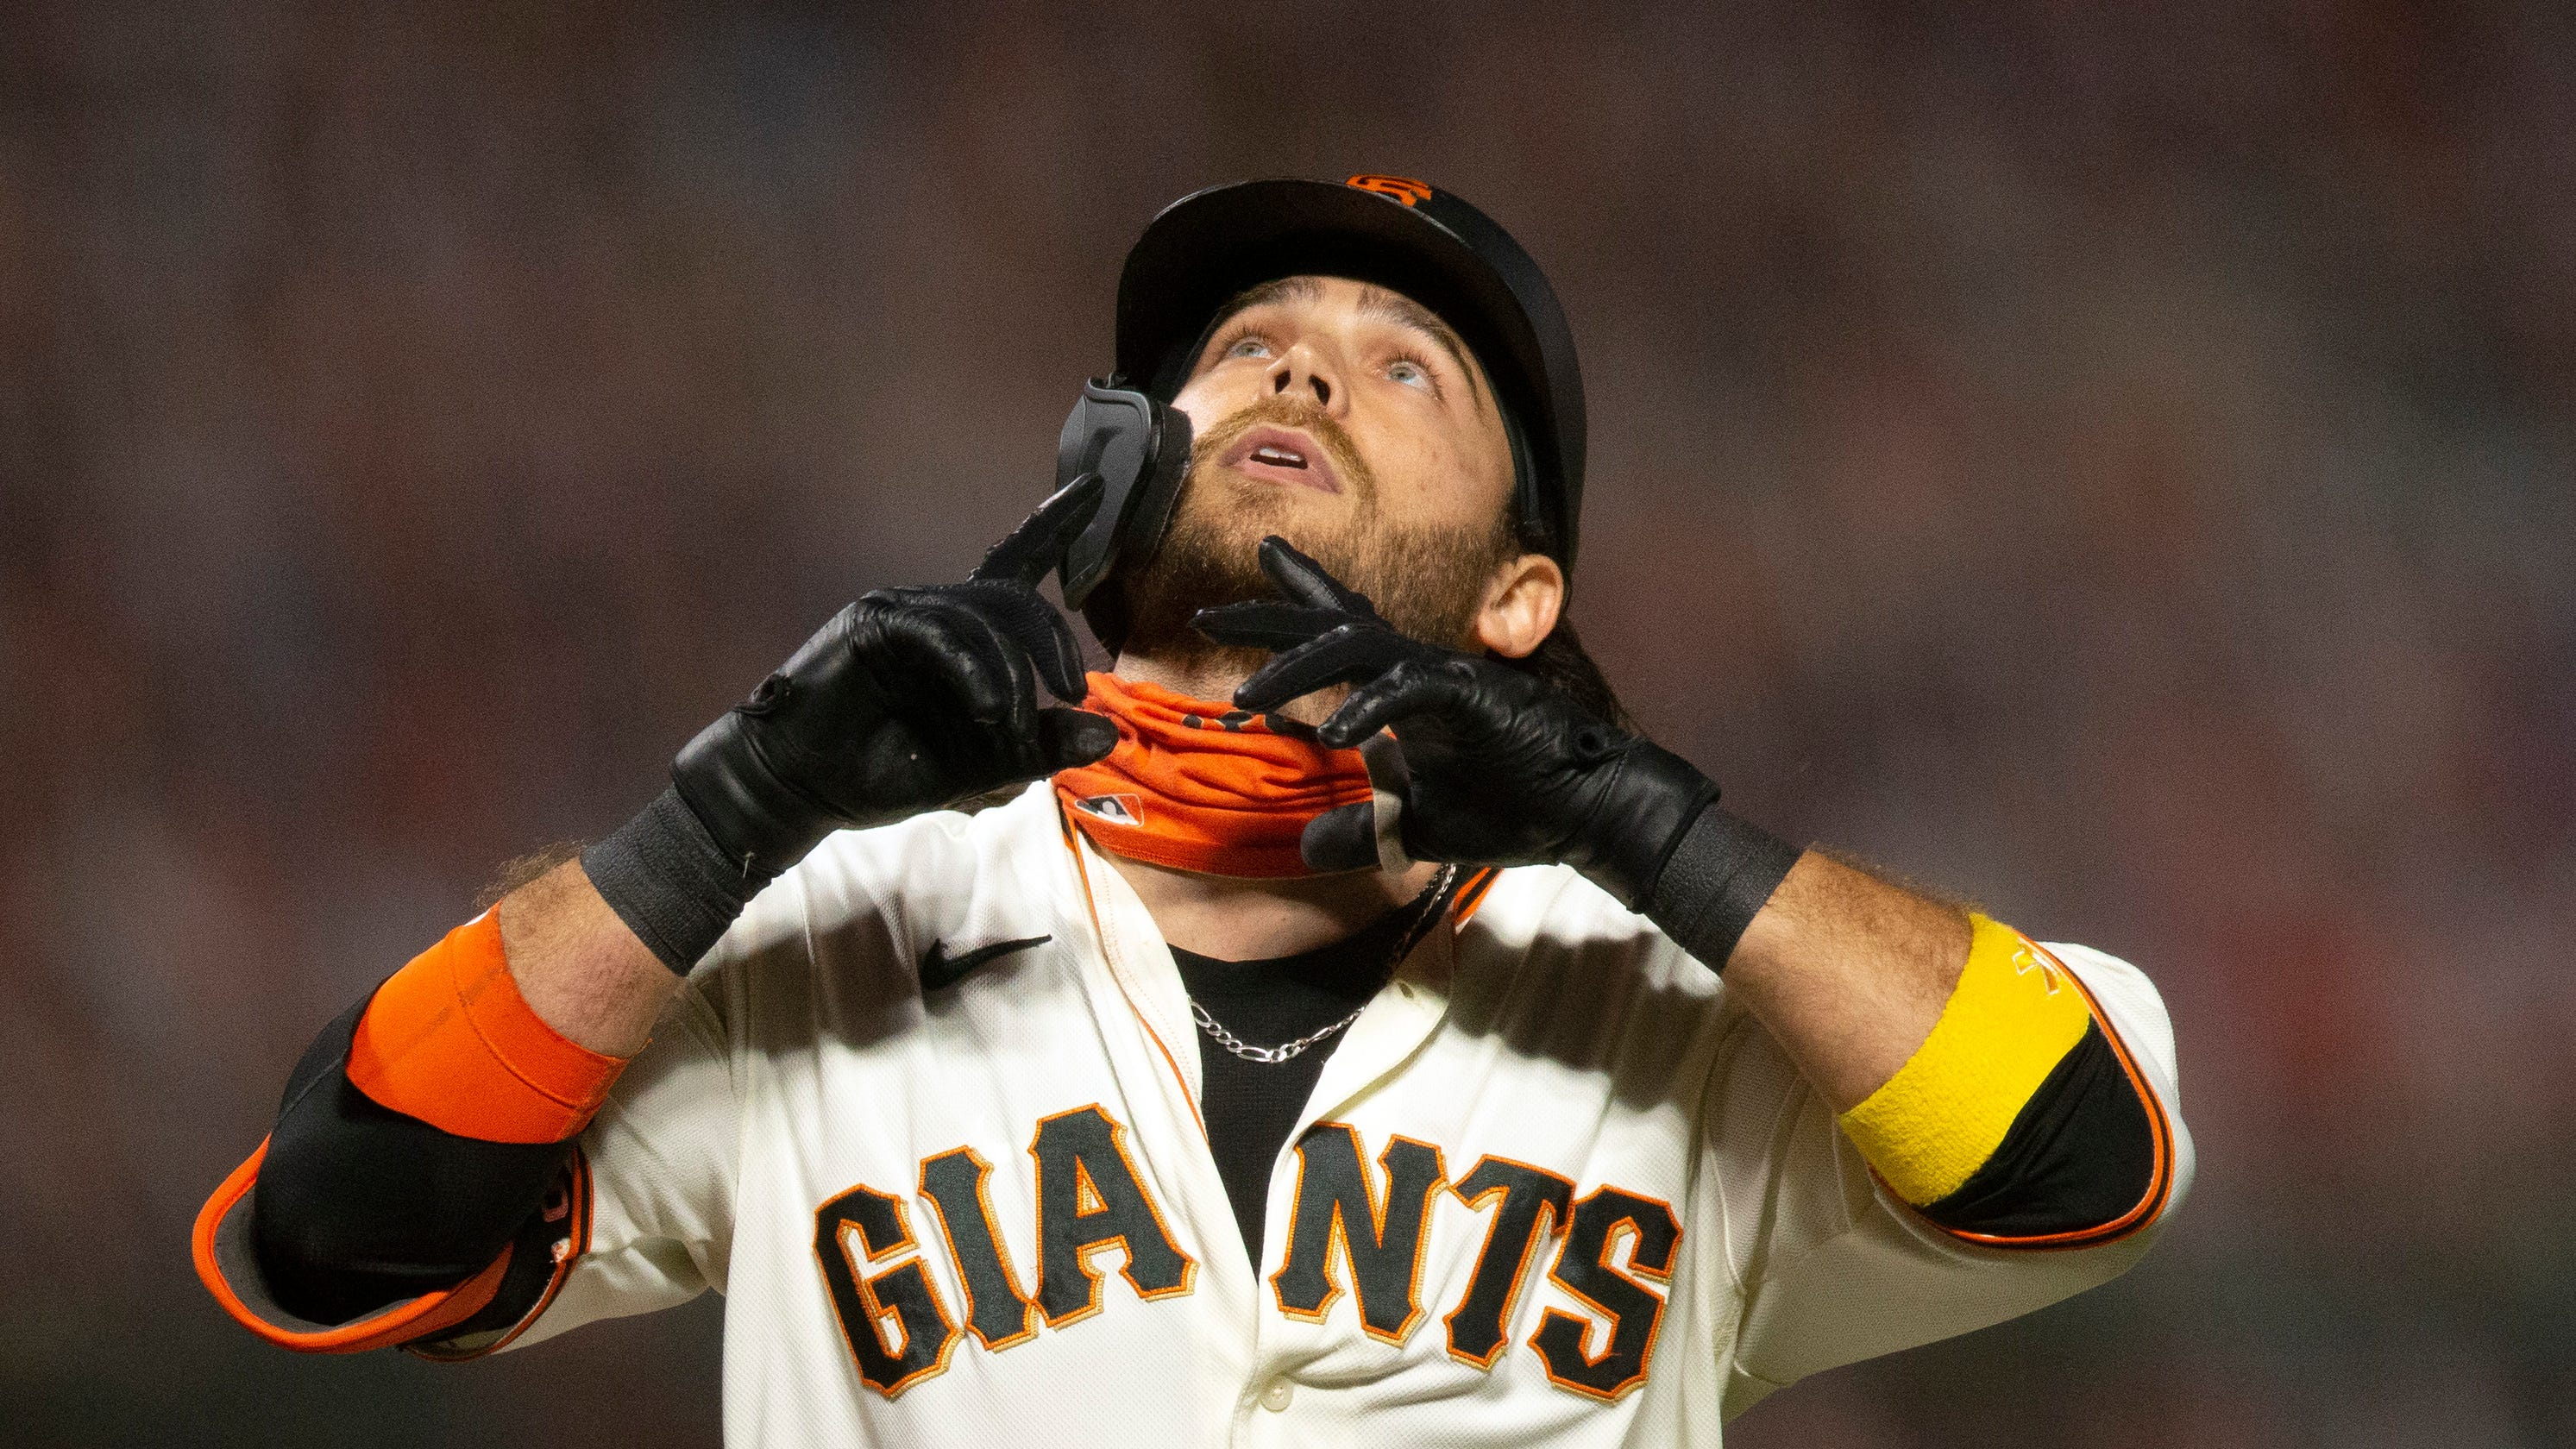 Giants in 2020 MLB playoff hunt, not in the midst of a rebuild